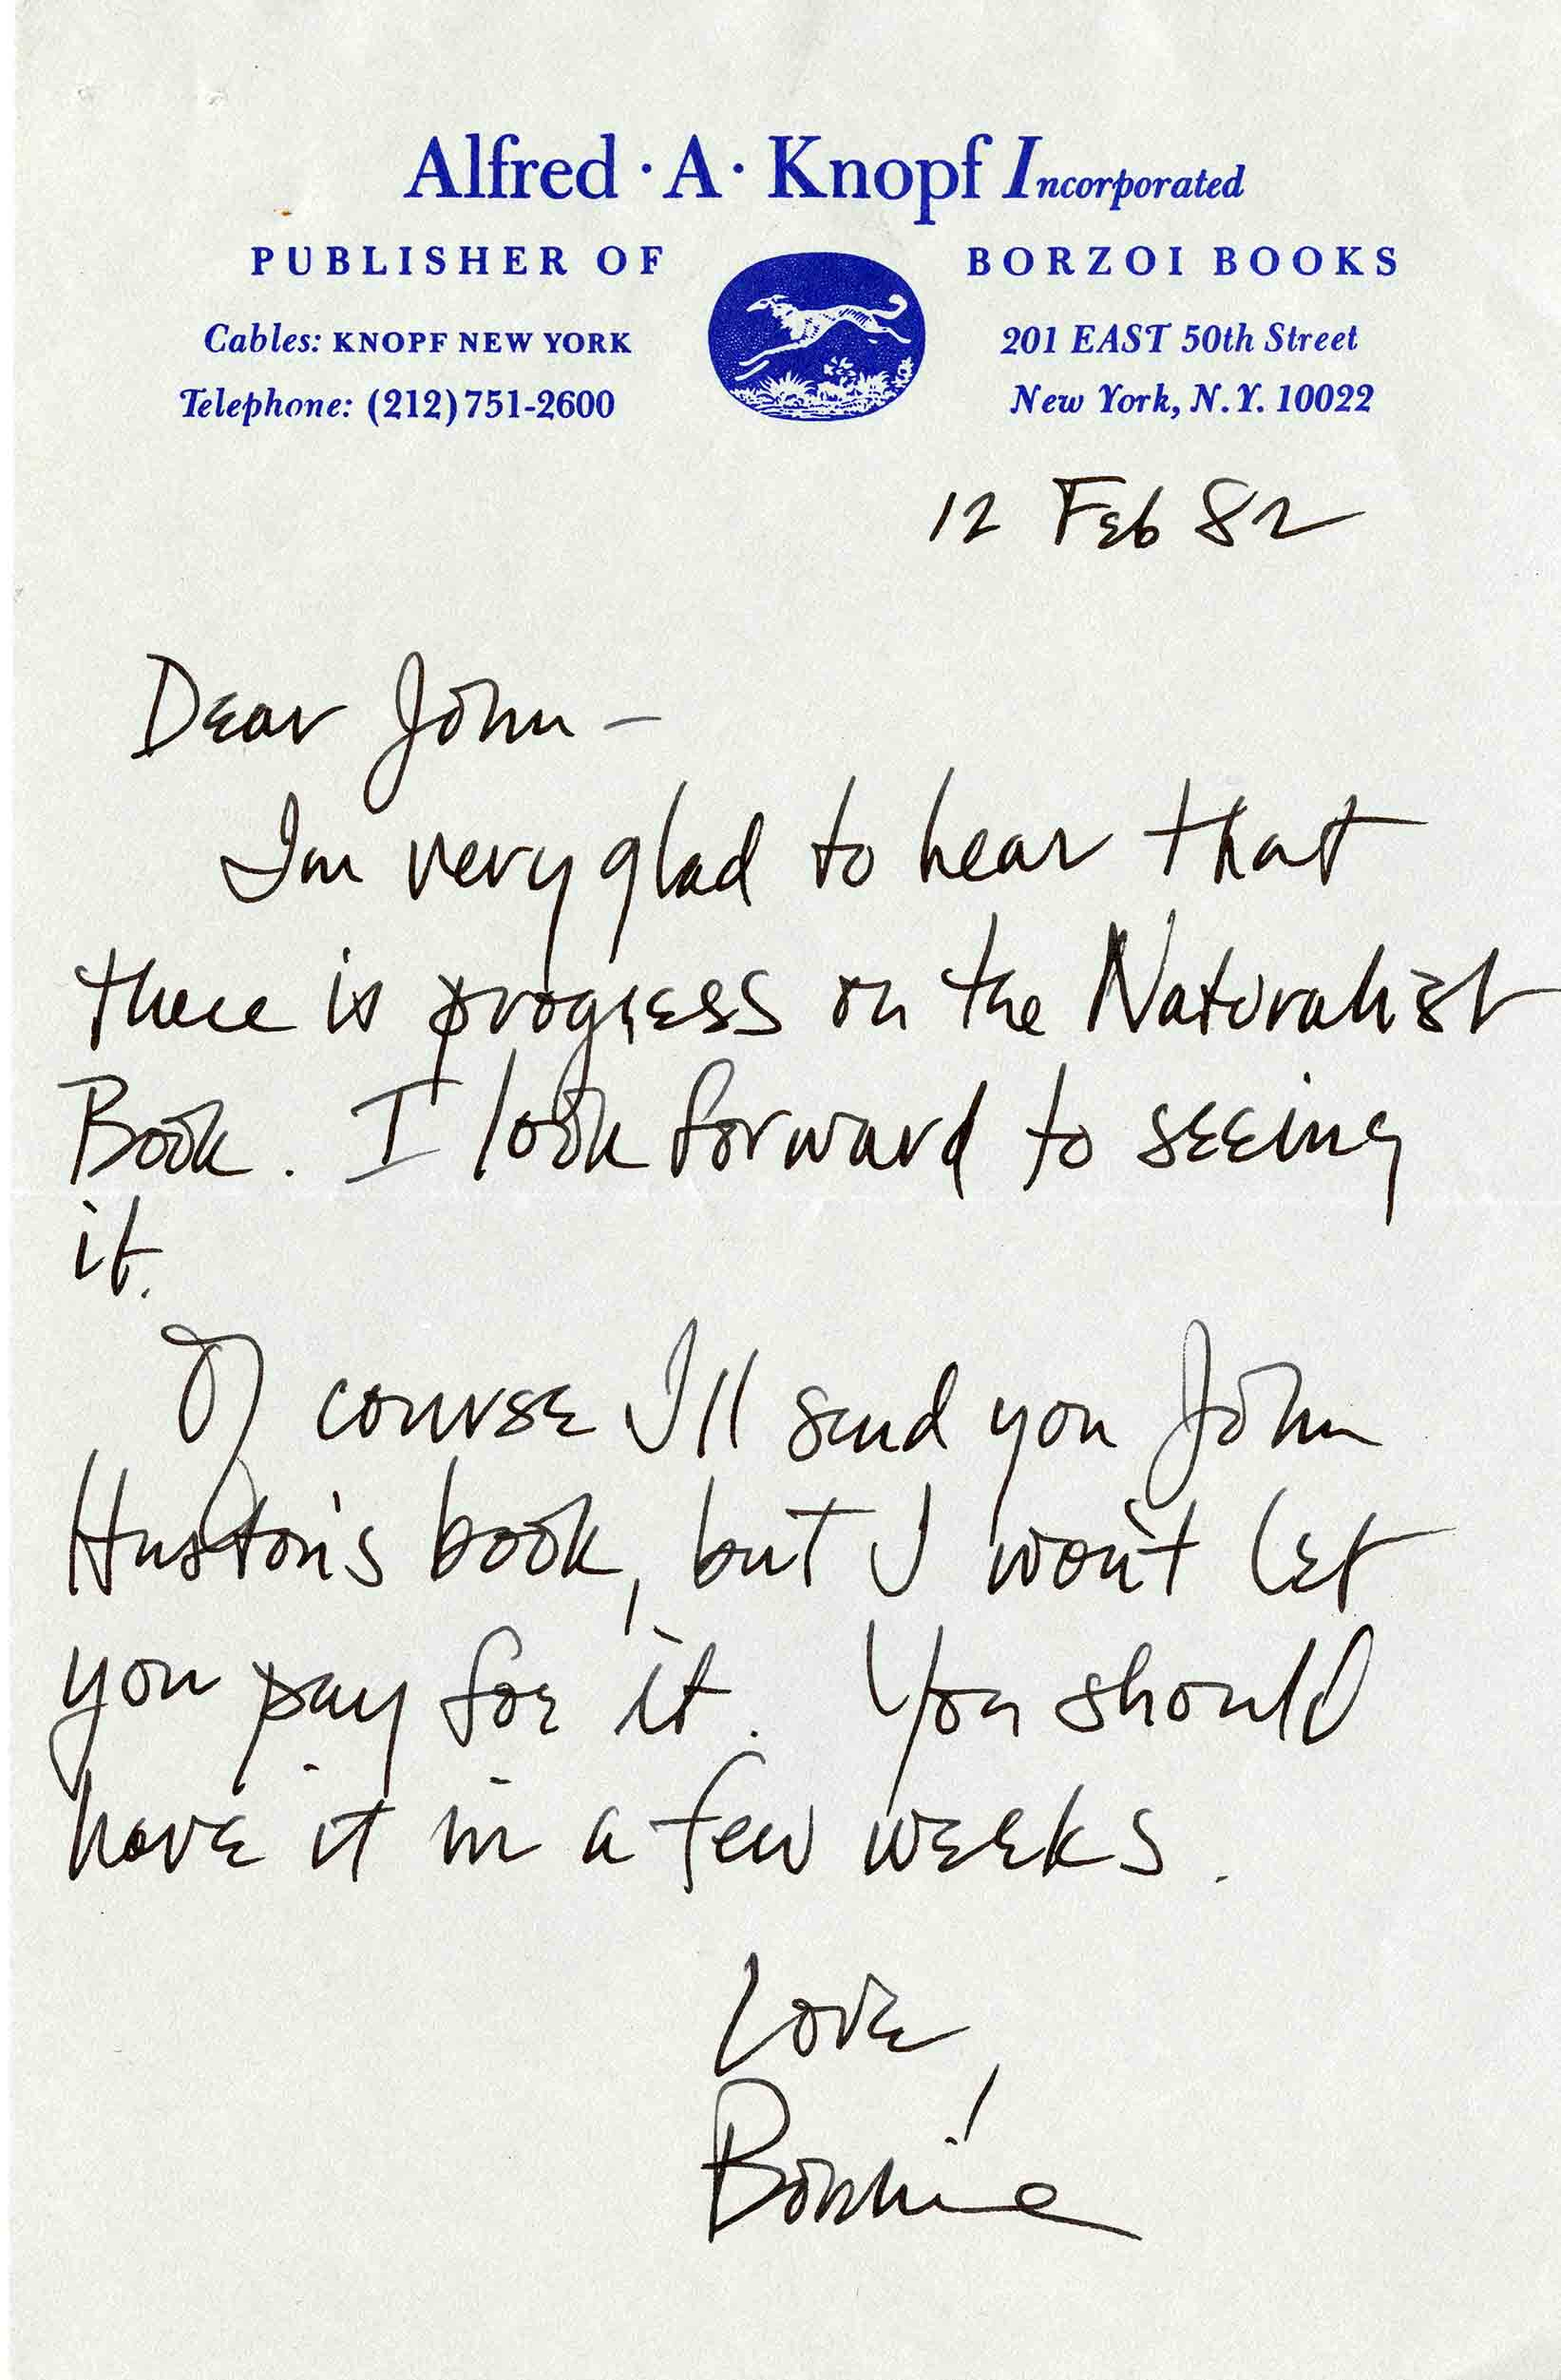 Note from John Terres's publisher at Alfred A. Knopf, February 12, 1982